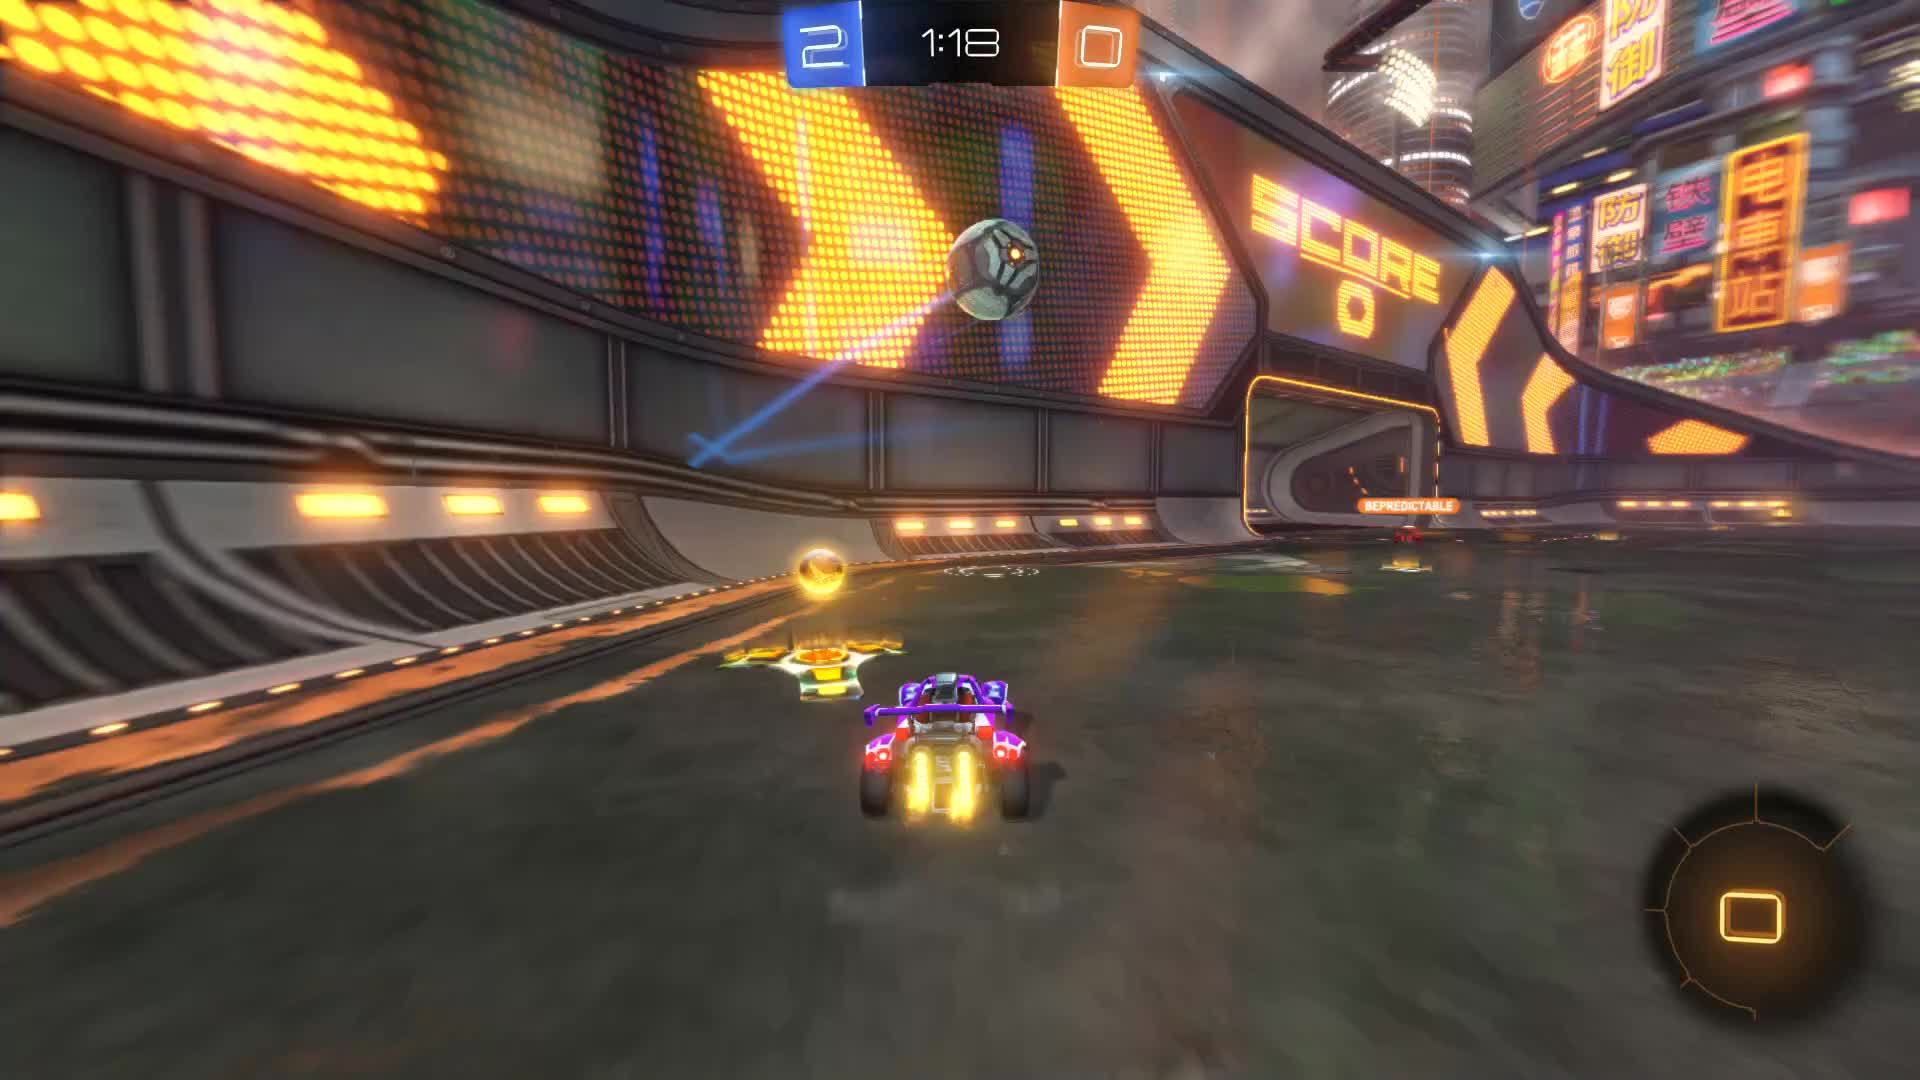 Gif Your Game, GifYourGame, Goal, Rocket League, RocketLeague, ThePreach2, Goal 3: ThePreach2 GIFs